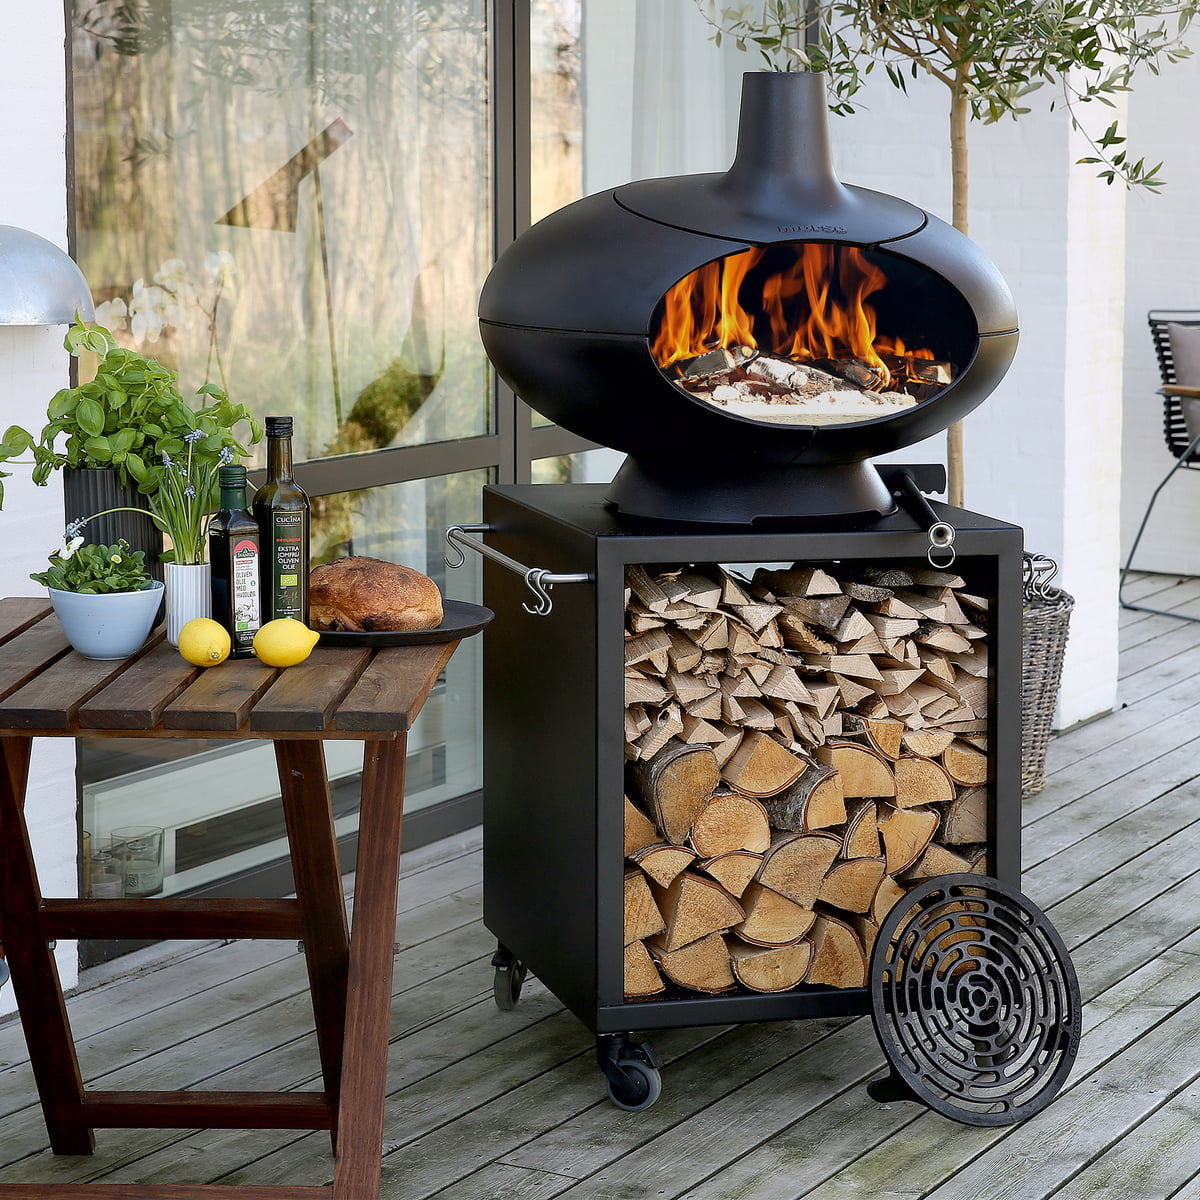 Forno grill oven from mors connox shop - Best outdoor barbecue grill ...